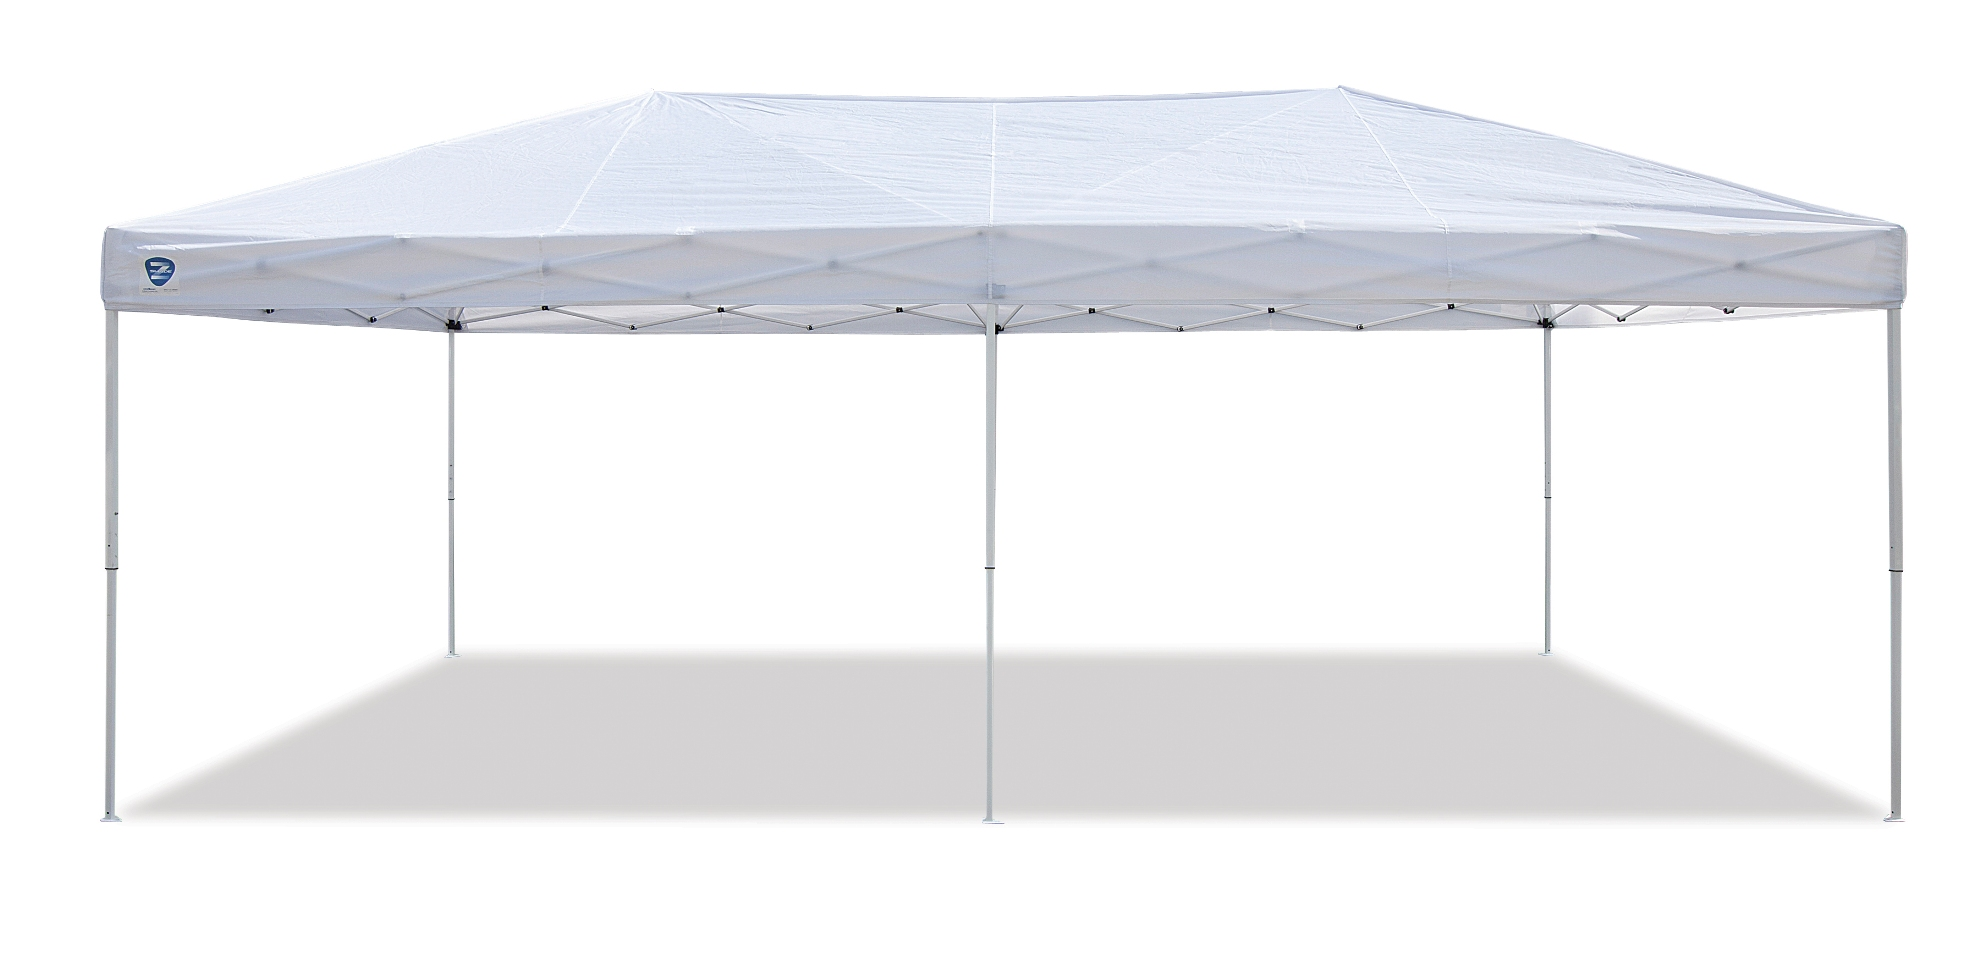 Z-Shade 10' x 20'  Everest Instant Canopy